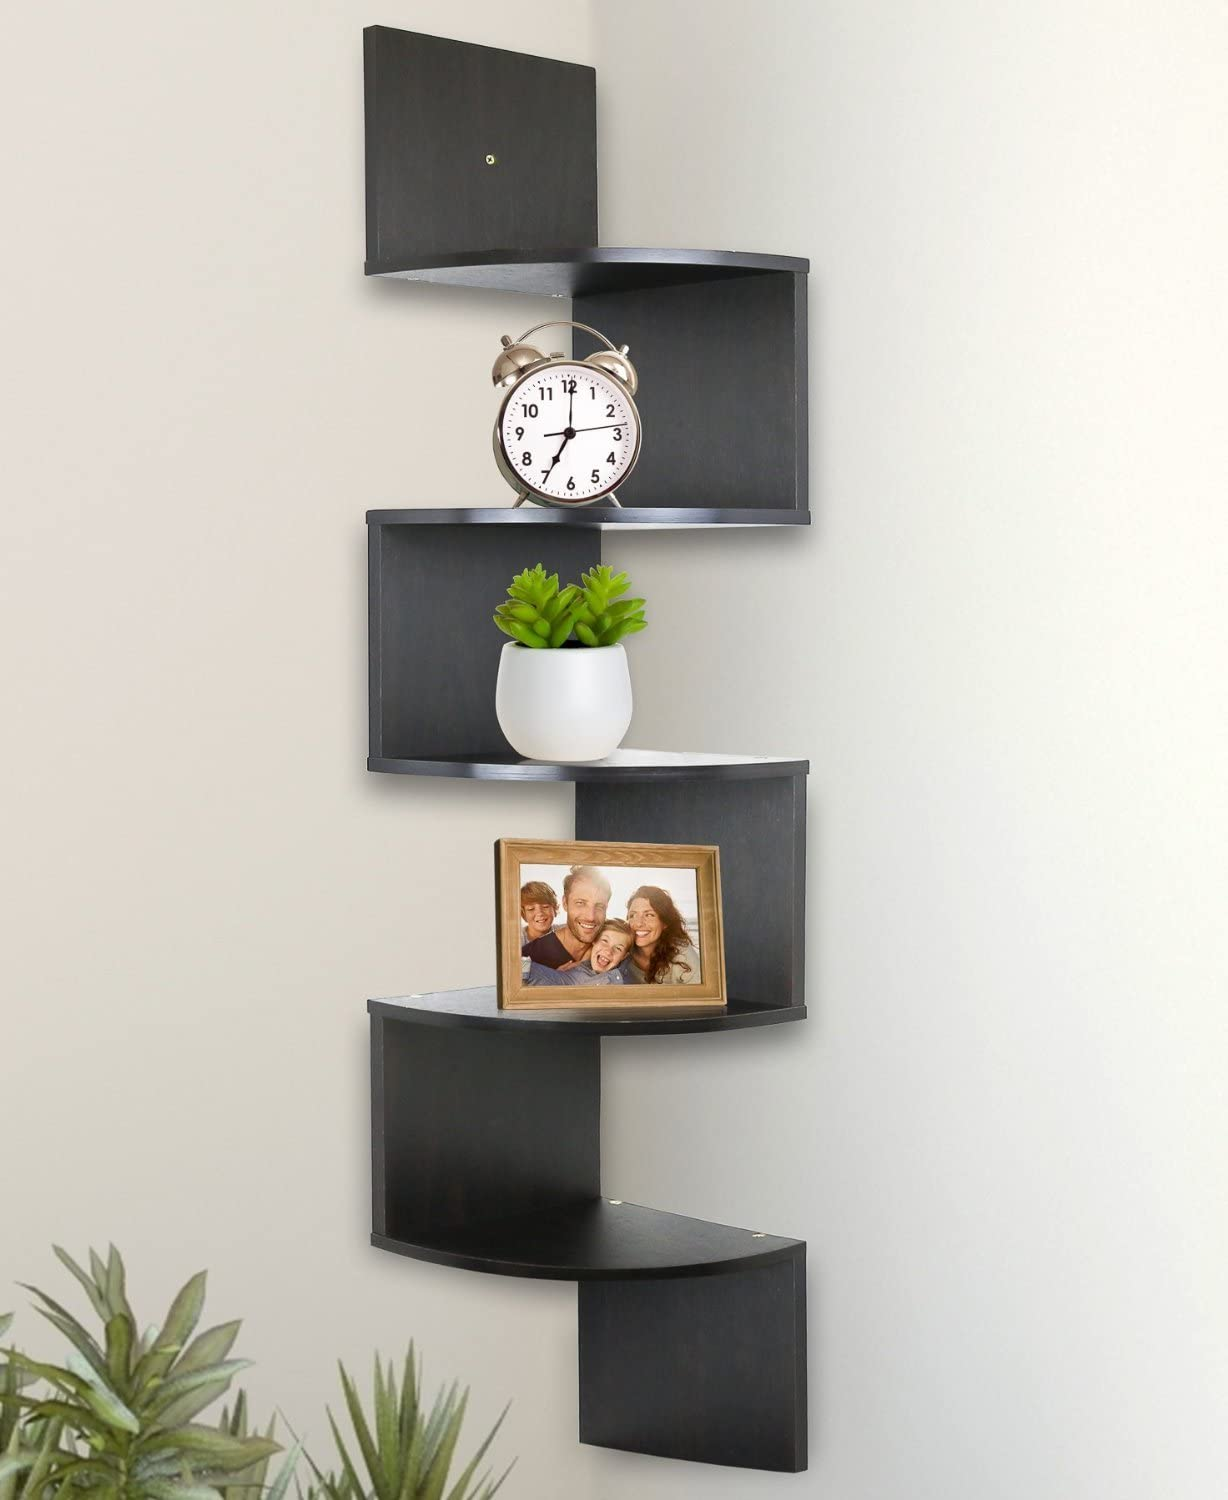 Greenco 5-Tier Corner Hanging Bookshelves